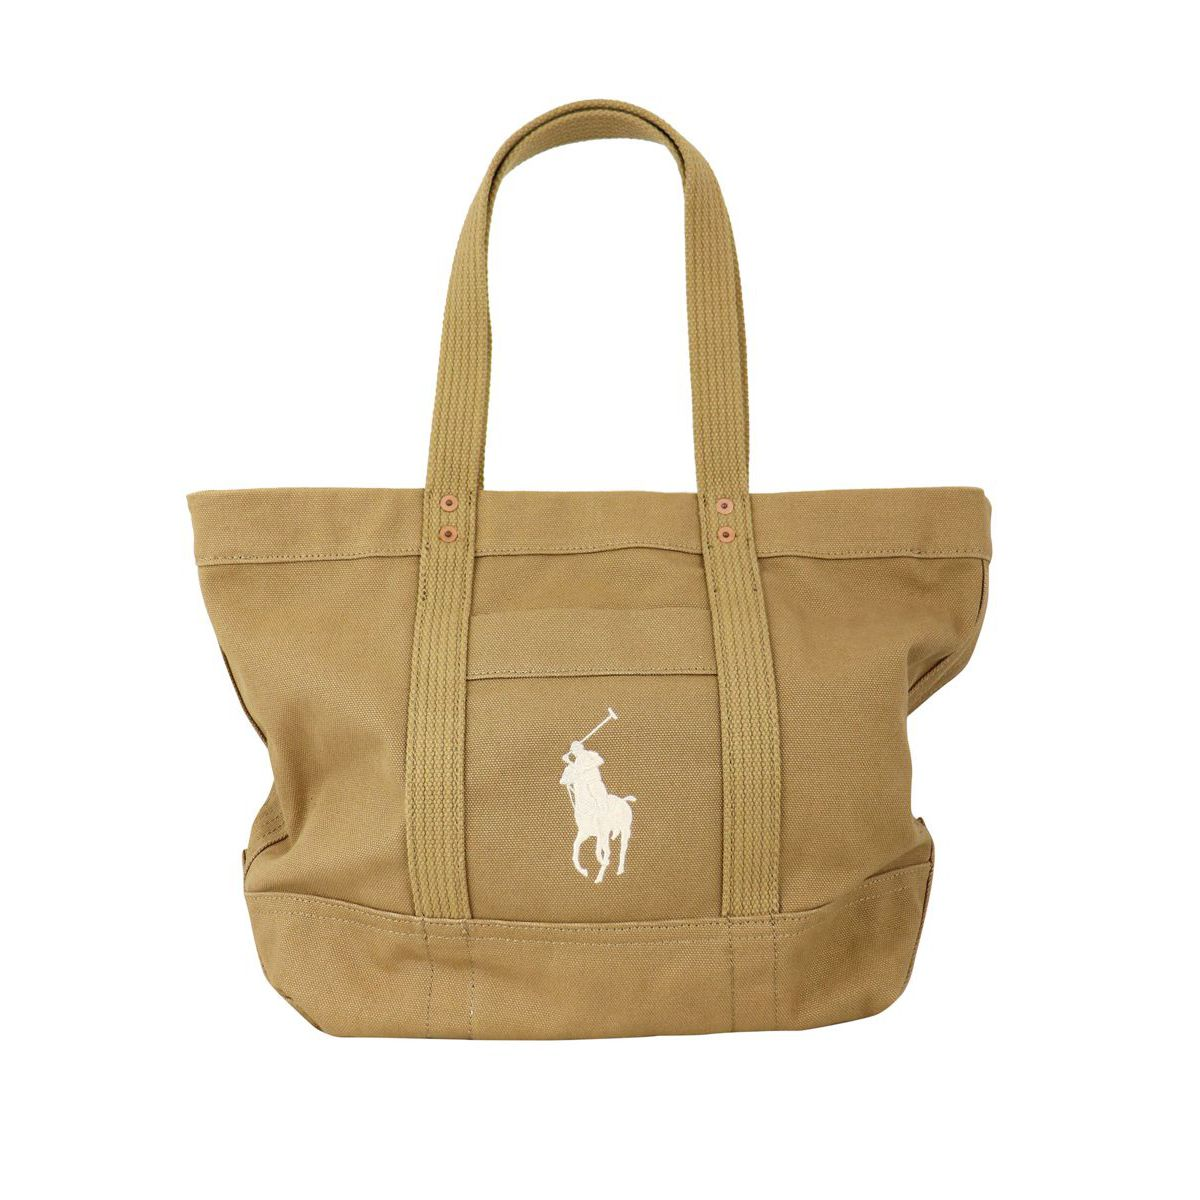 Cotton canvas tote bag with large embroidered logo Kaki Polo Ralph Lauren